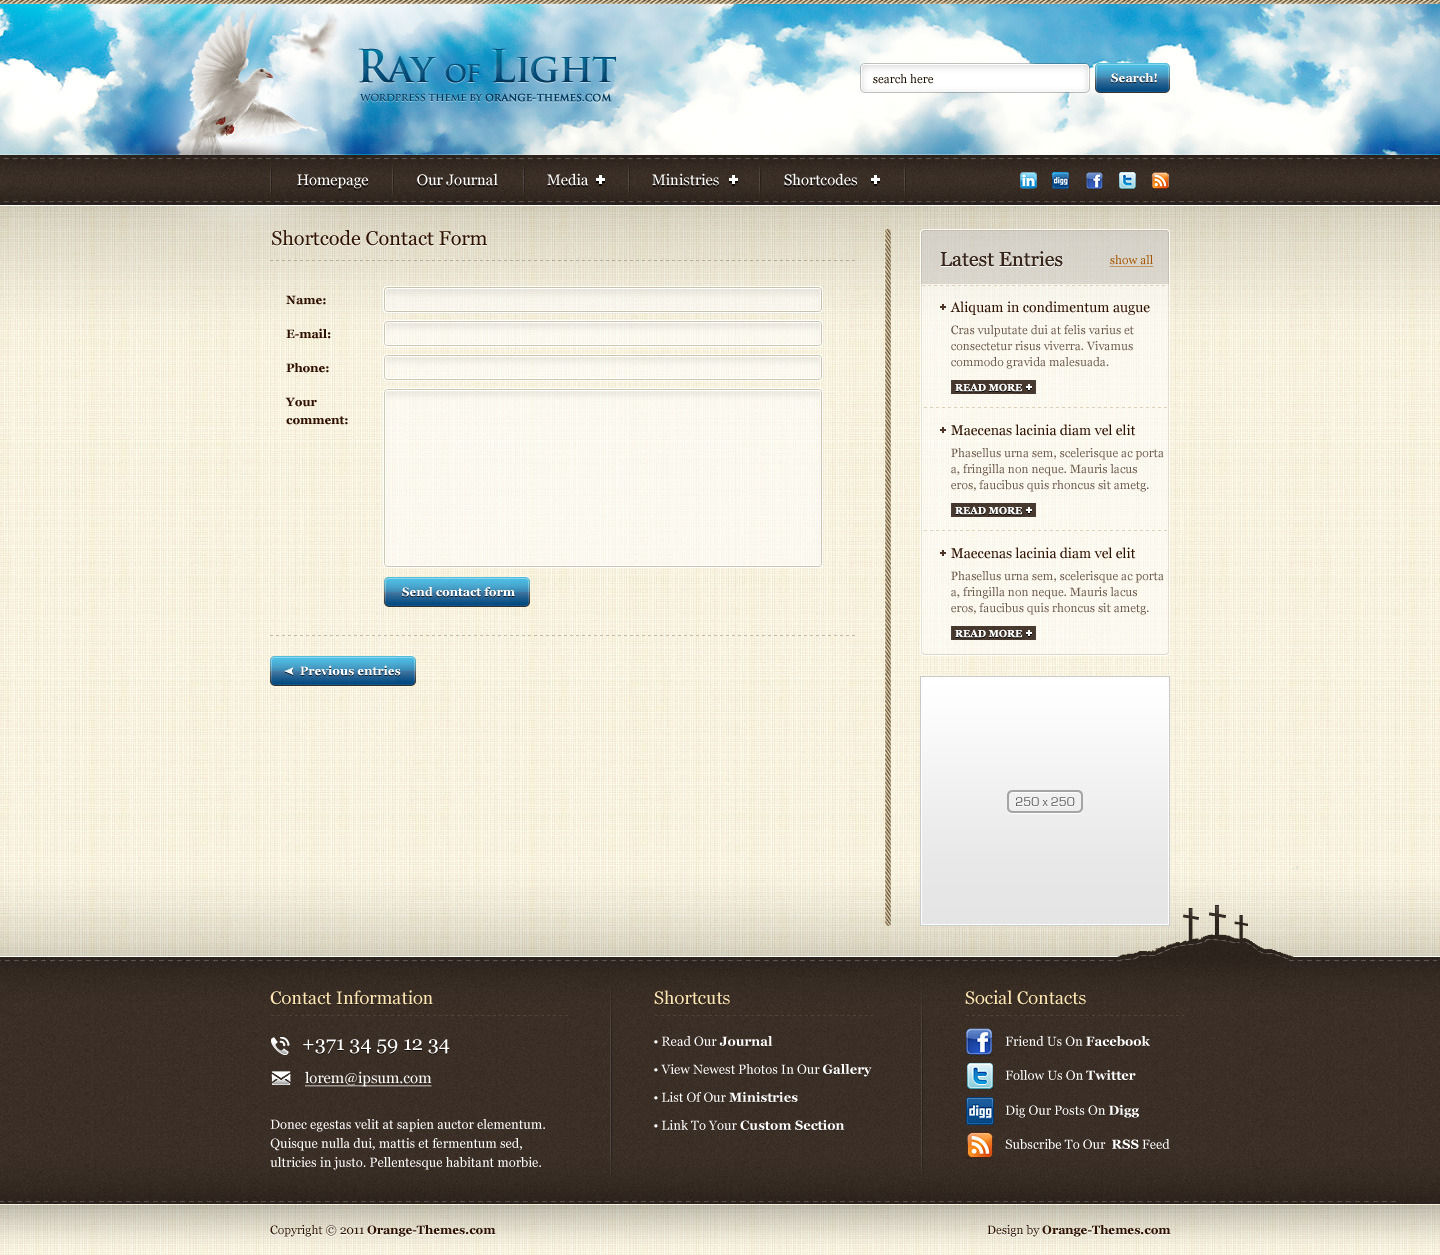 Ray Of Light - Theme For Religious Movements HTML